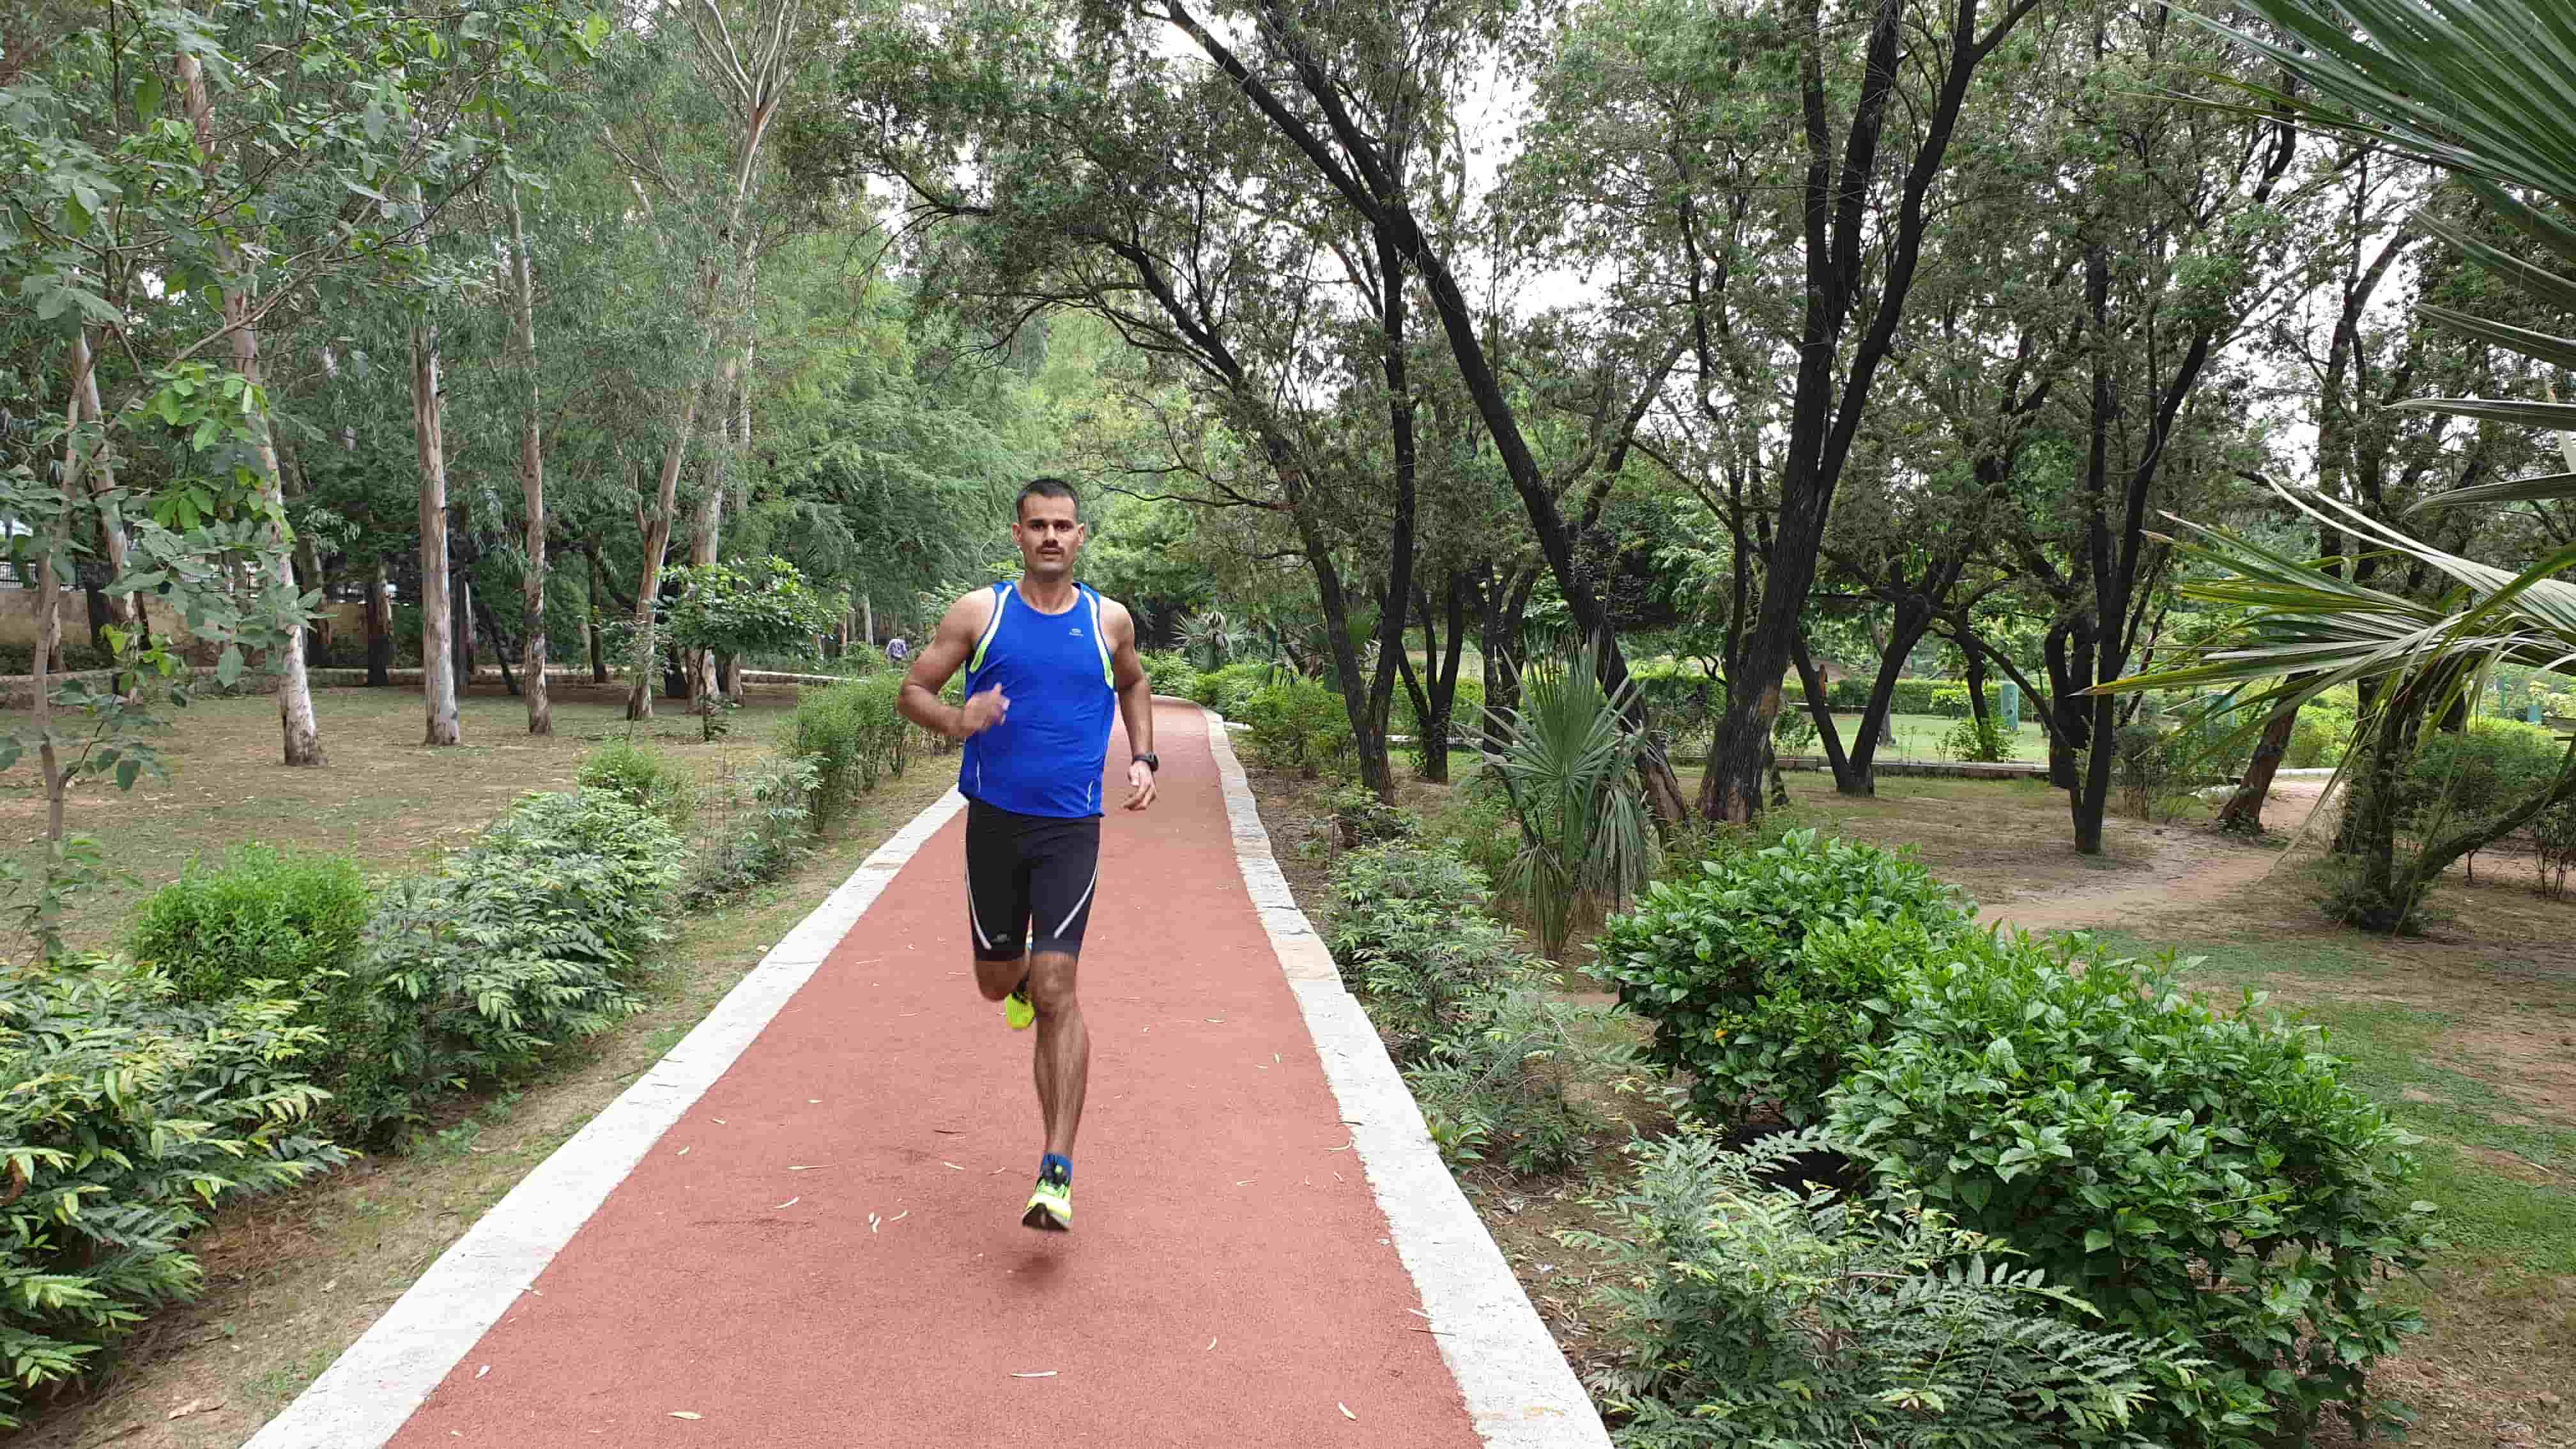 How To Run Faster: 16 Simple Tips To Follow